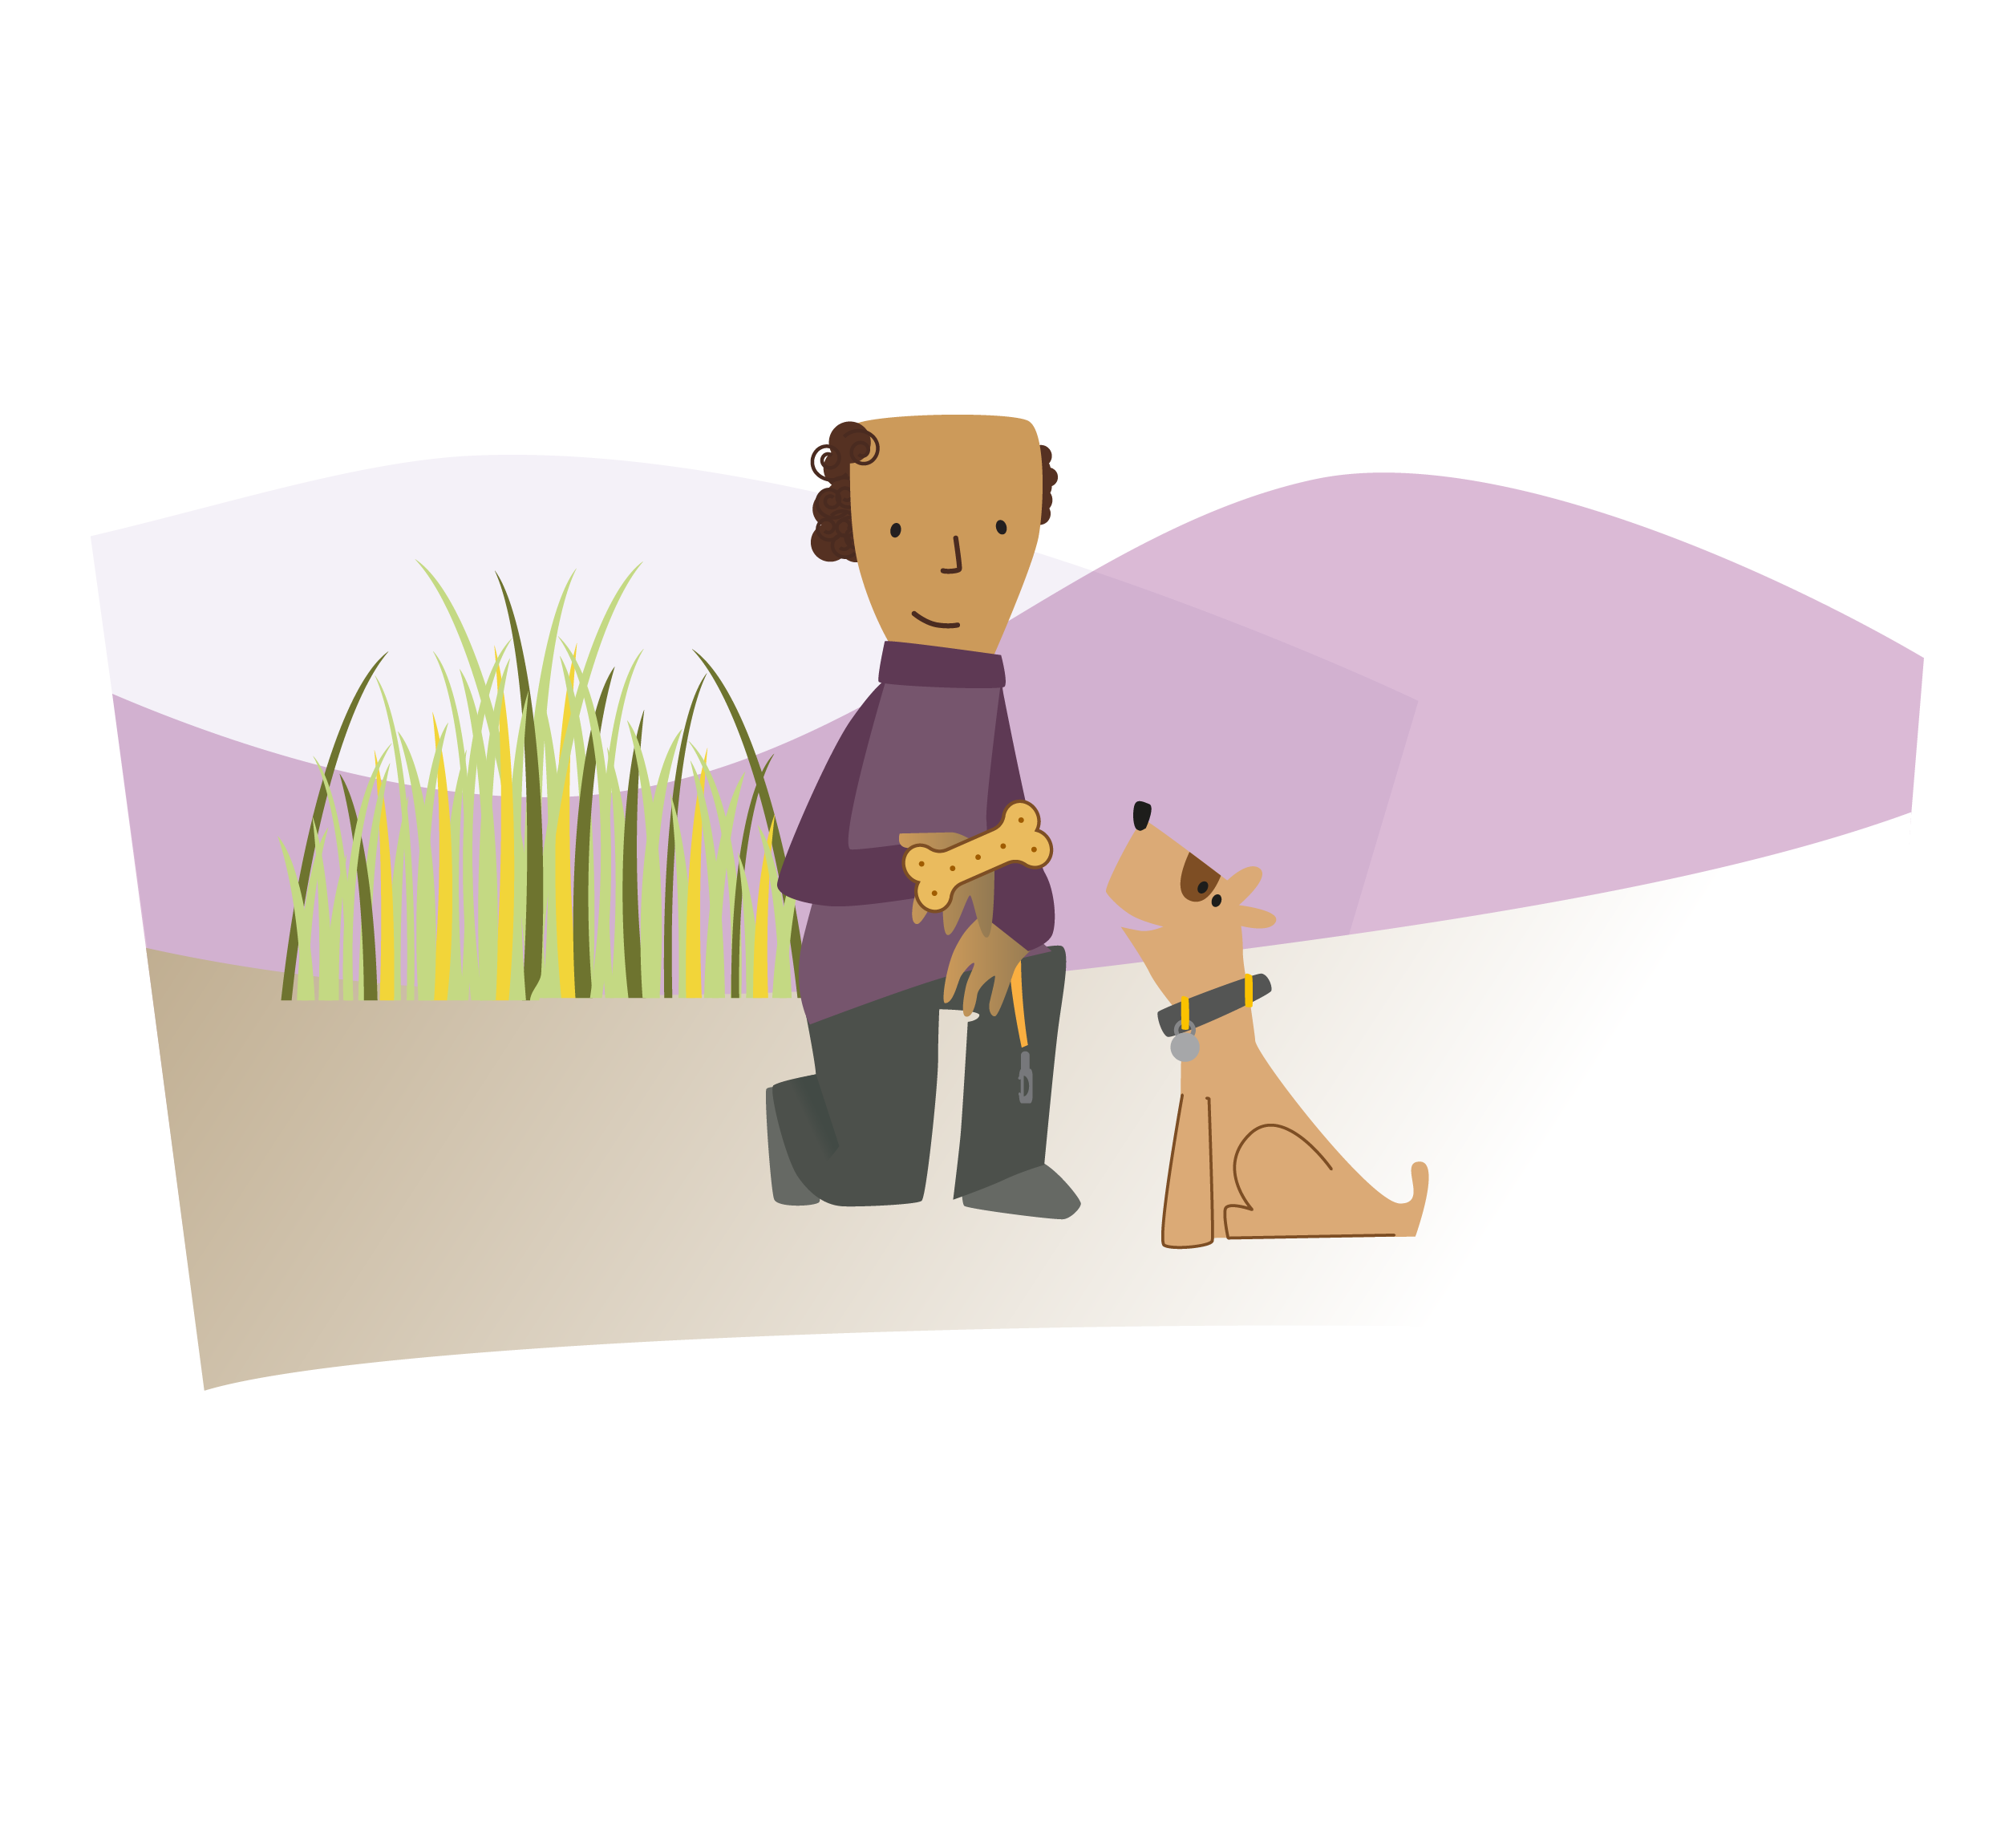 Image of dog focussed on his owner